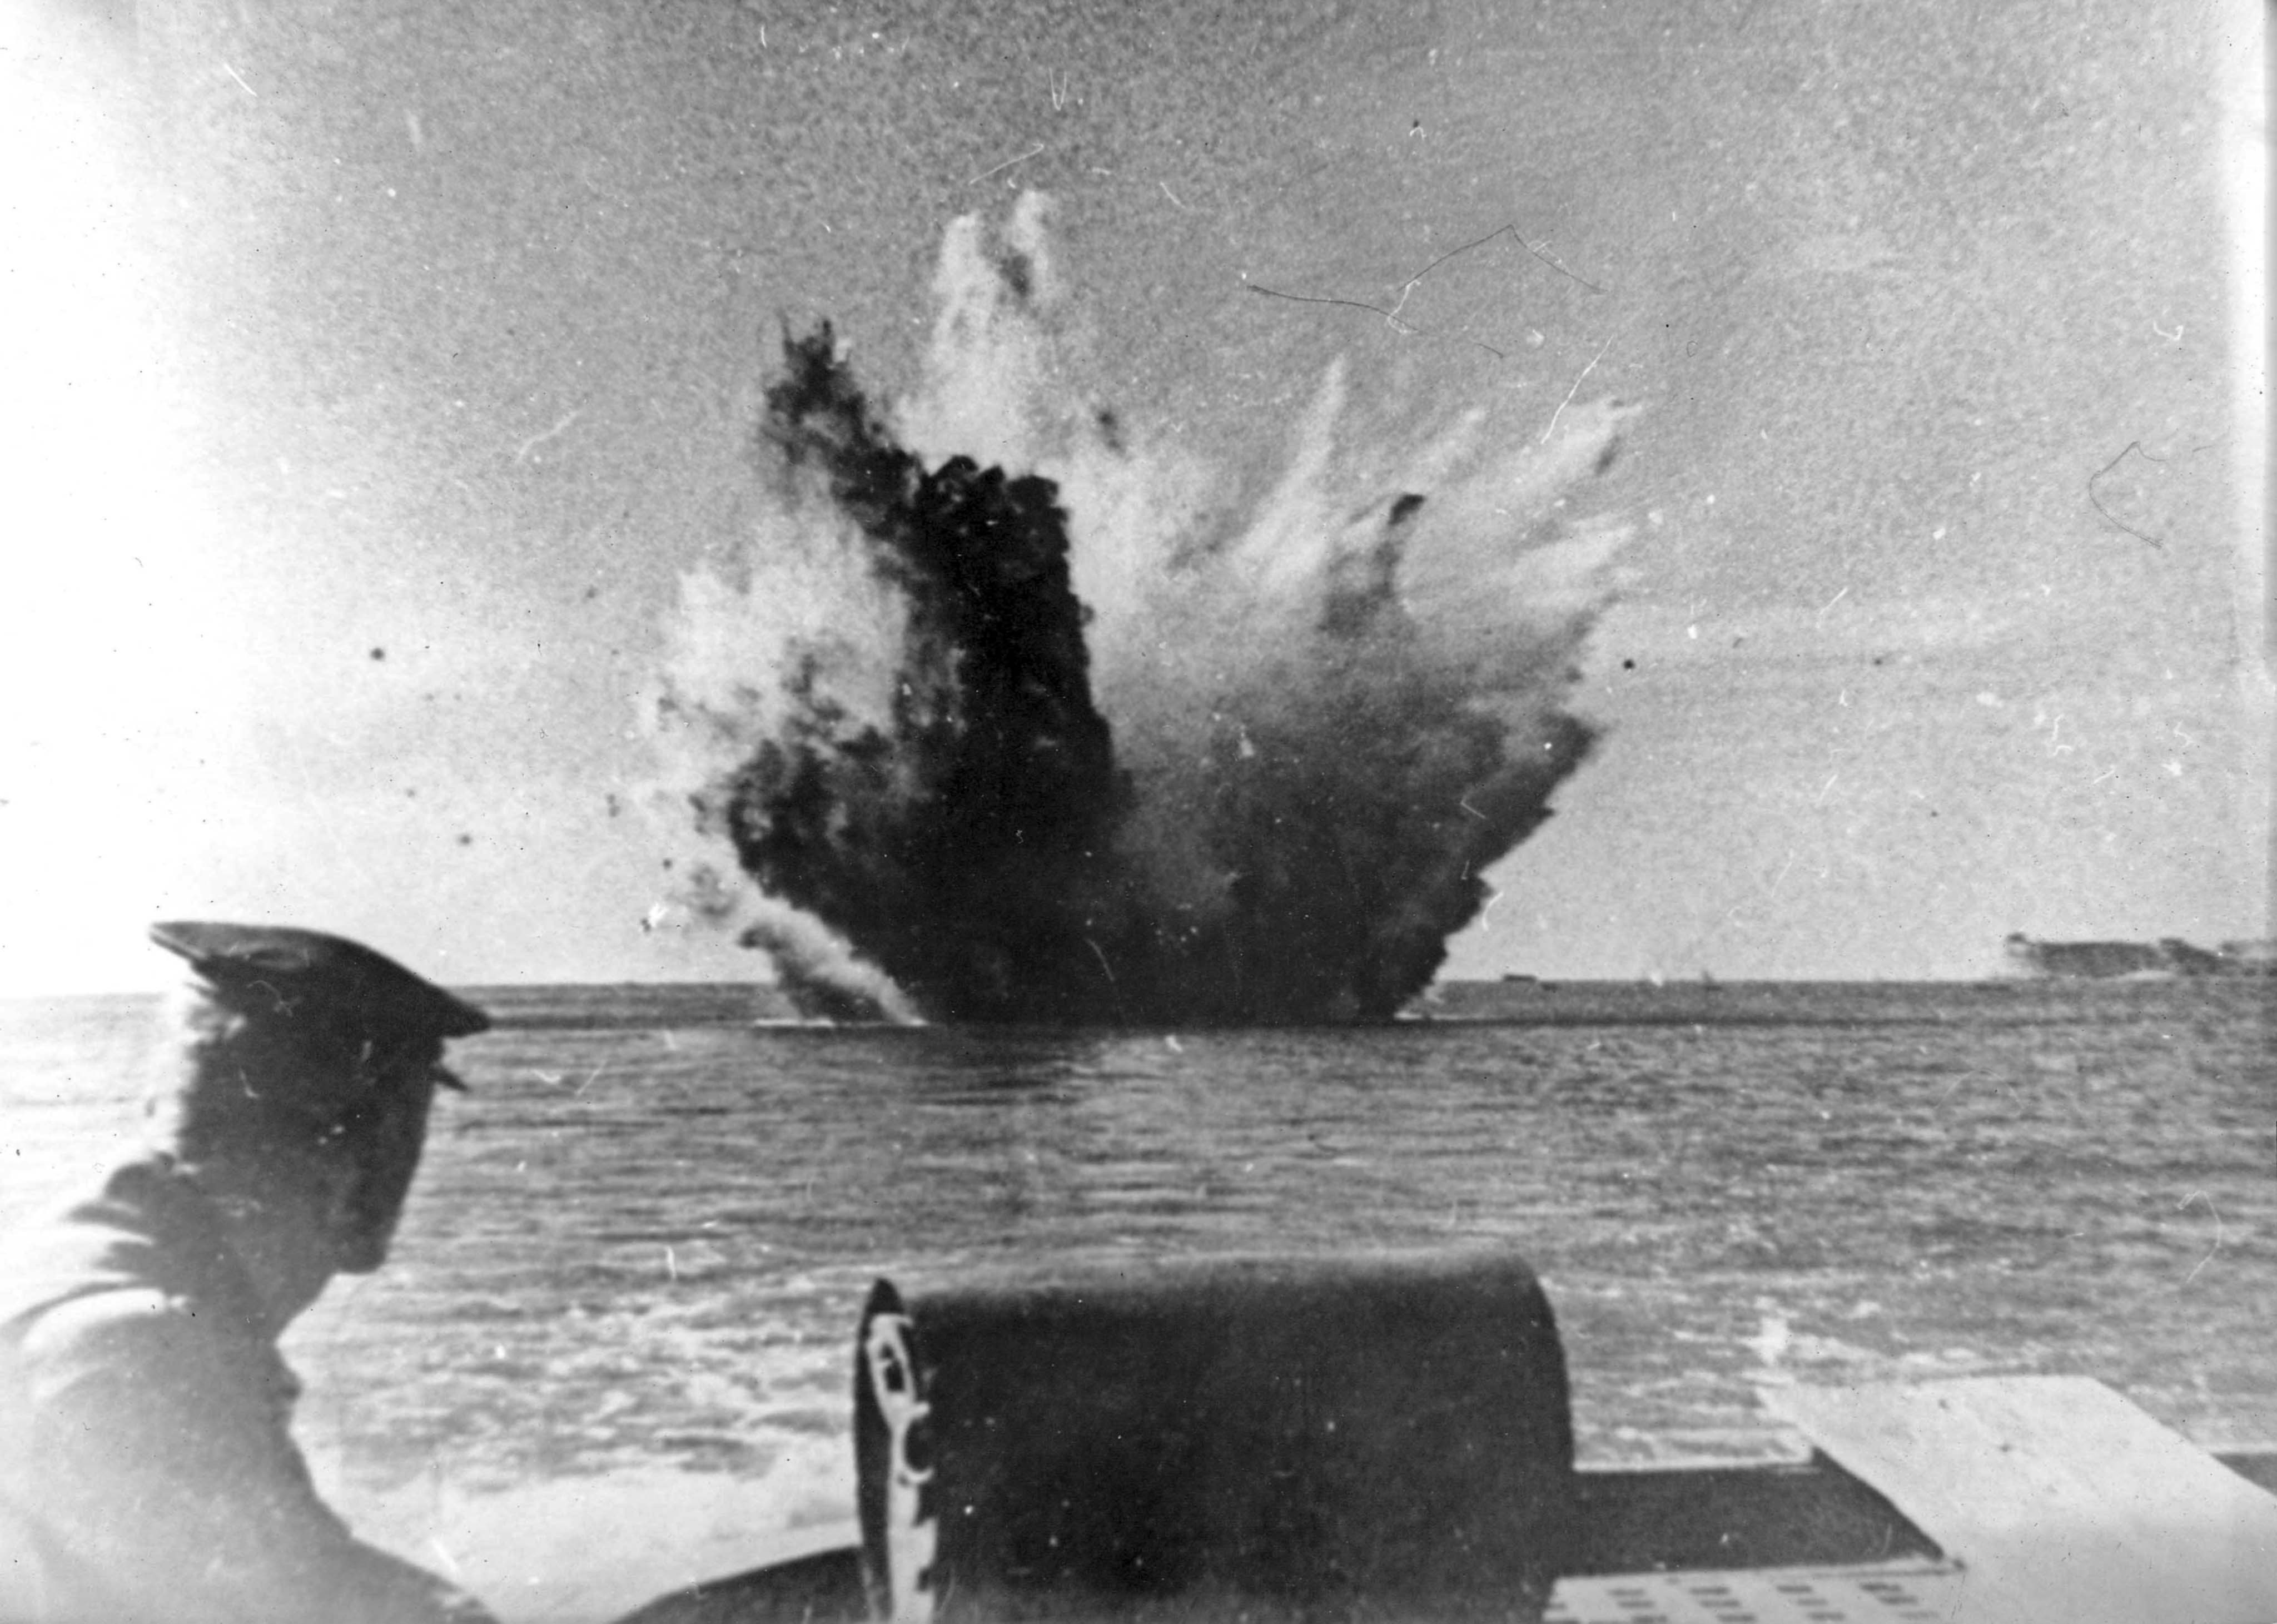 Explosions of depth charges